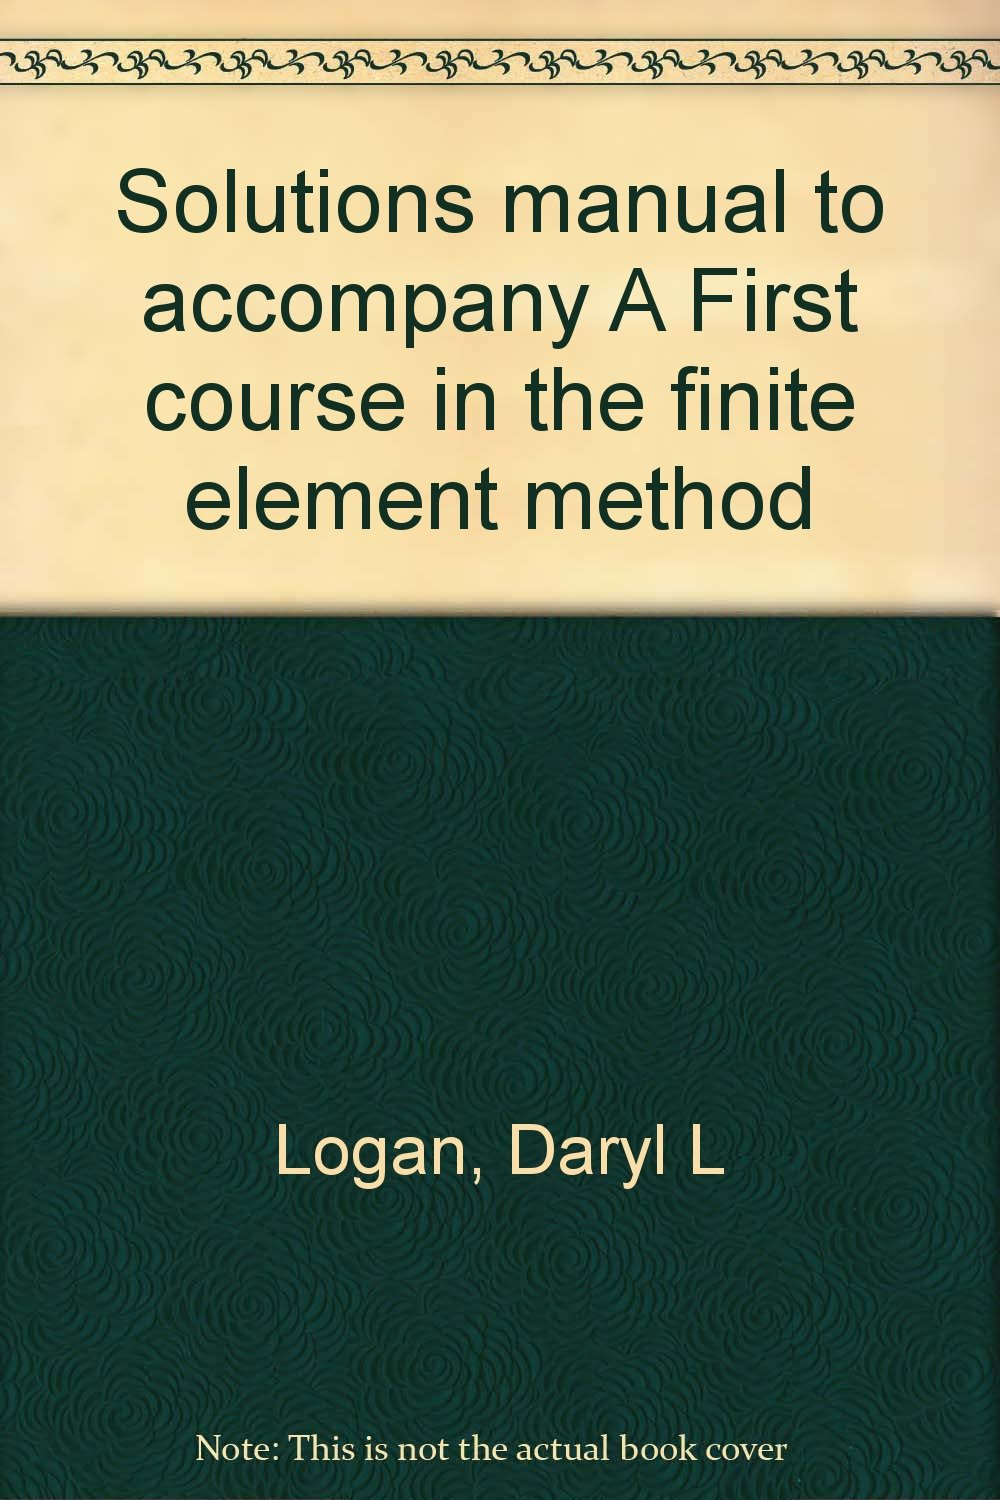 Solutions manual to accompany A First course in the finite element method:  Daryl L Logan: 9780534053956: Amazon.com: Books